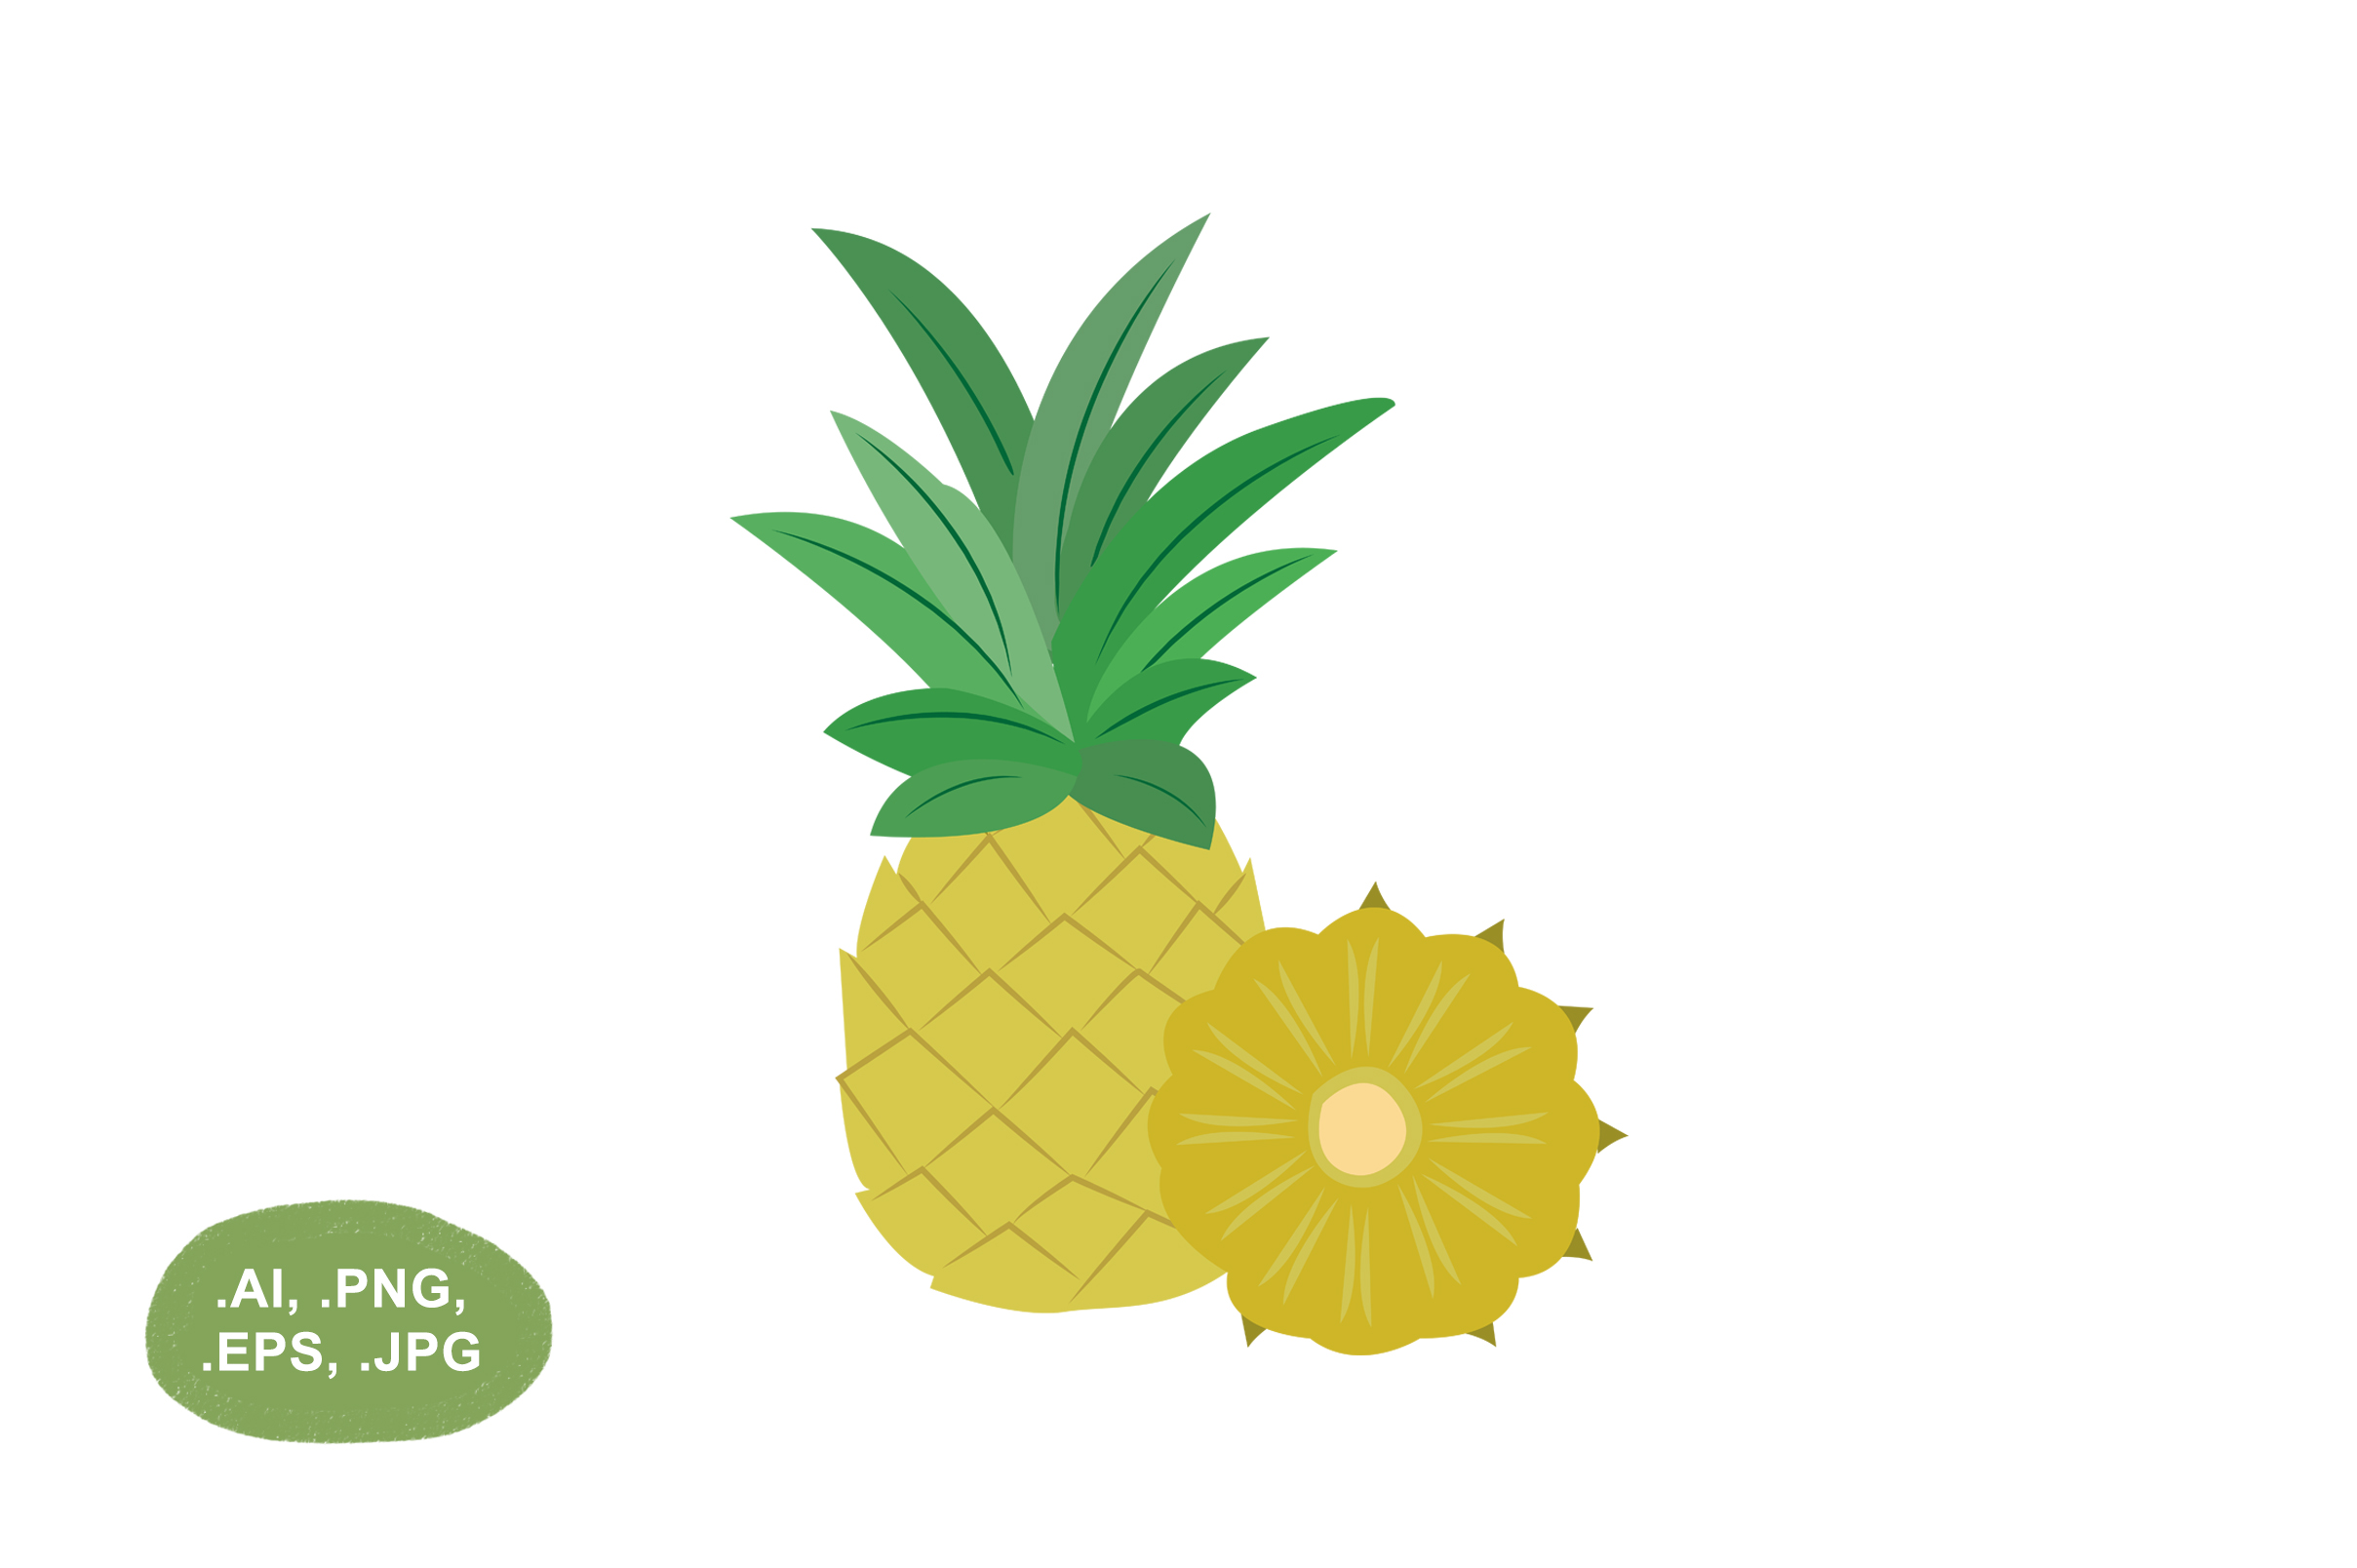 Download Free Pineapple Fruit Vector Illustration Graphic By Salfiart for Cricut Explore, Silhouette and other cutting machines.